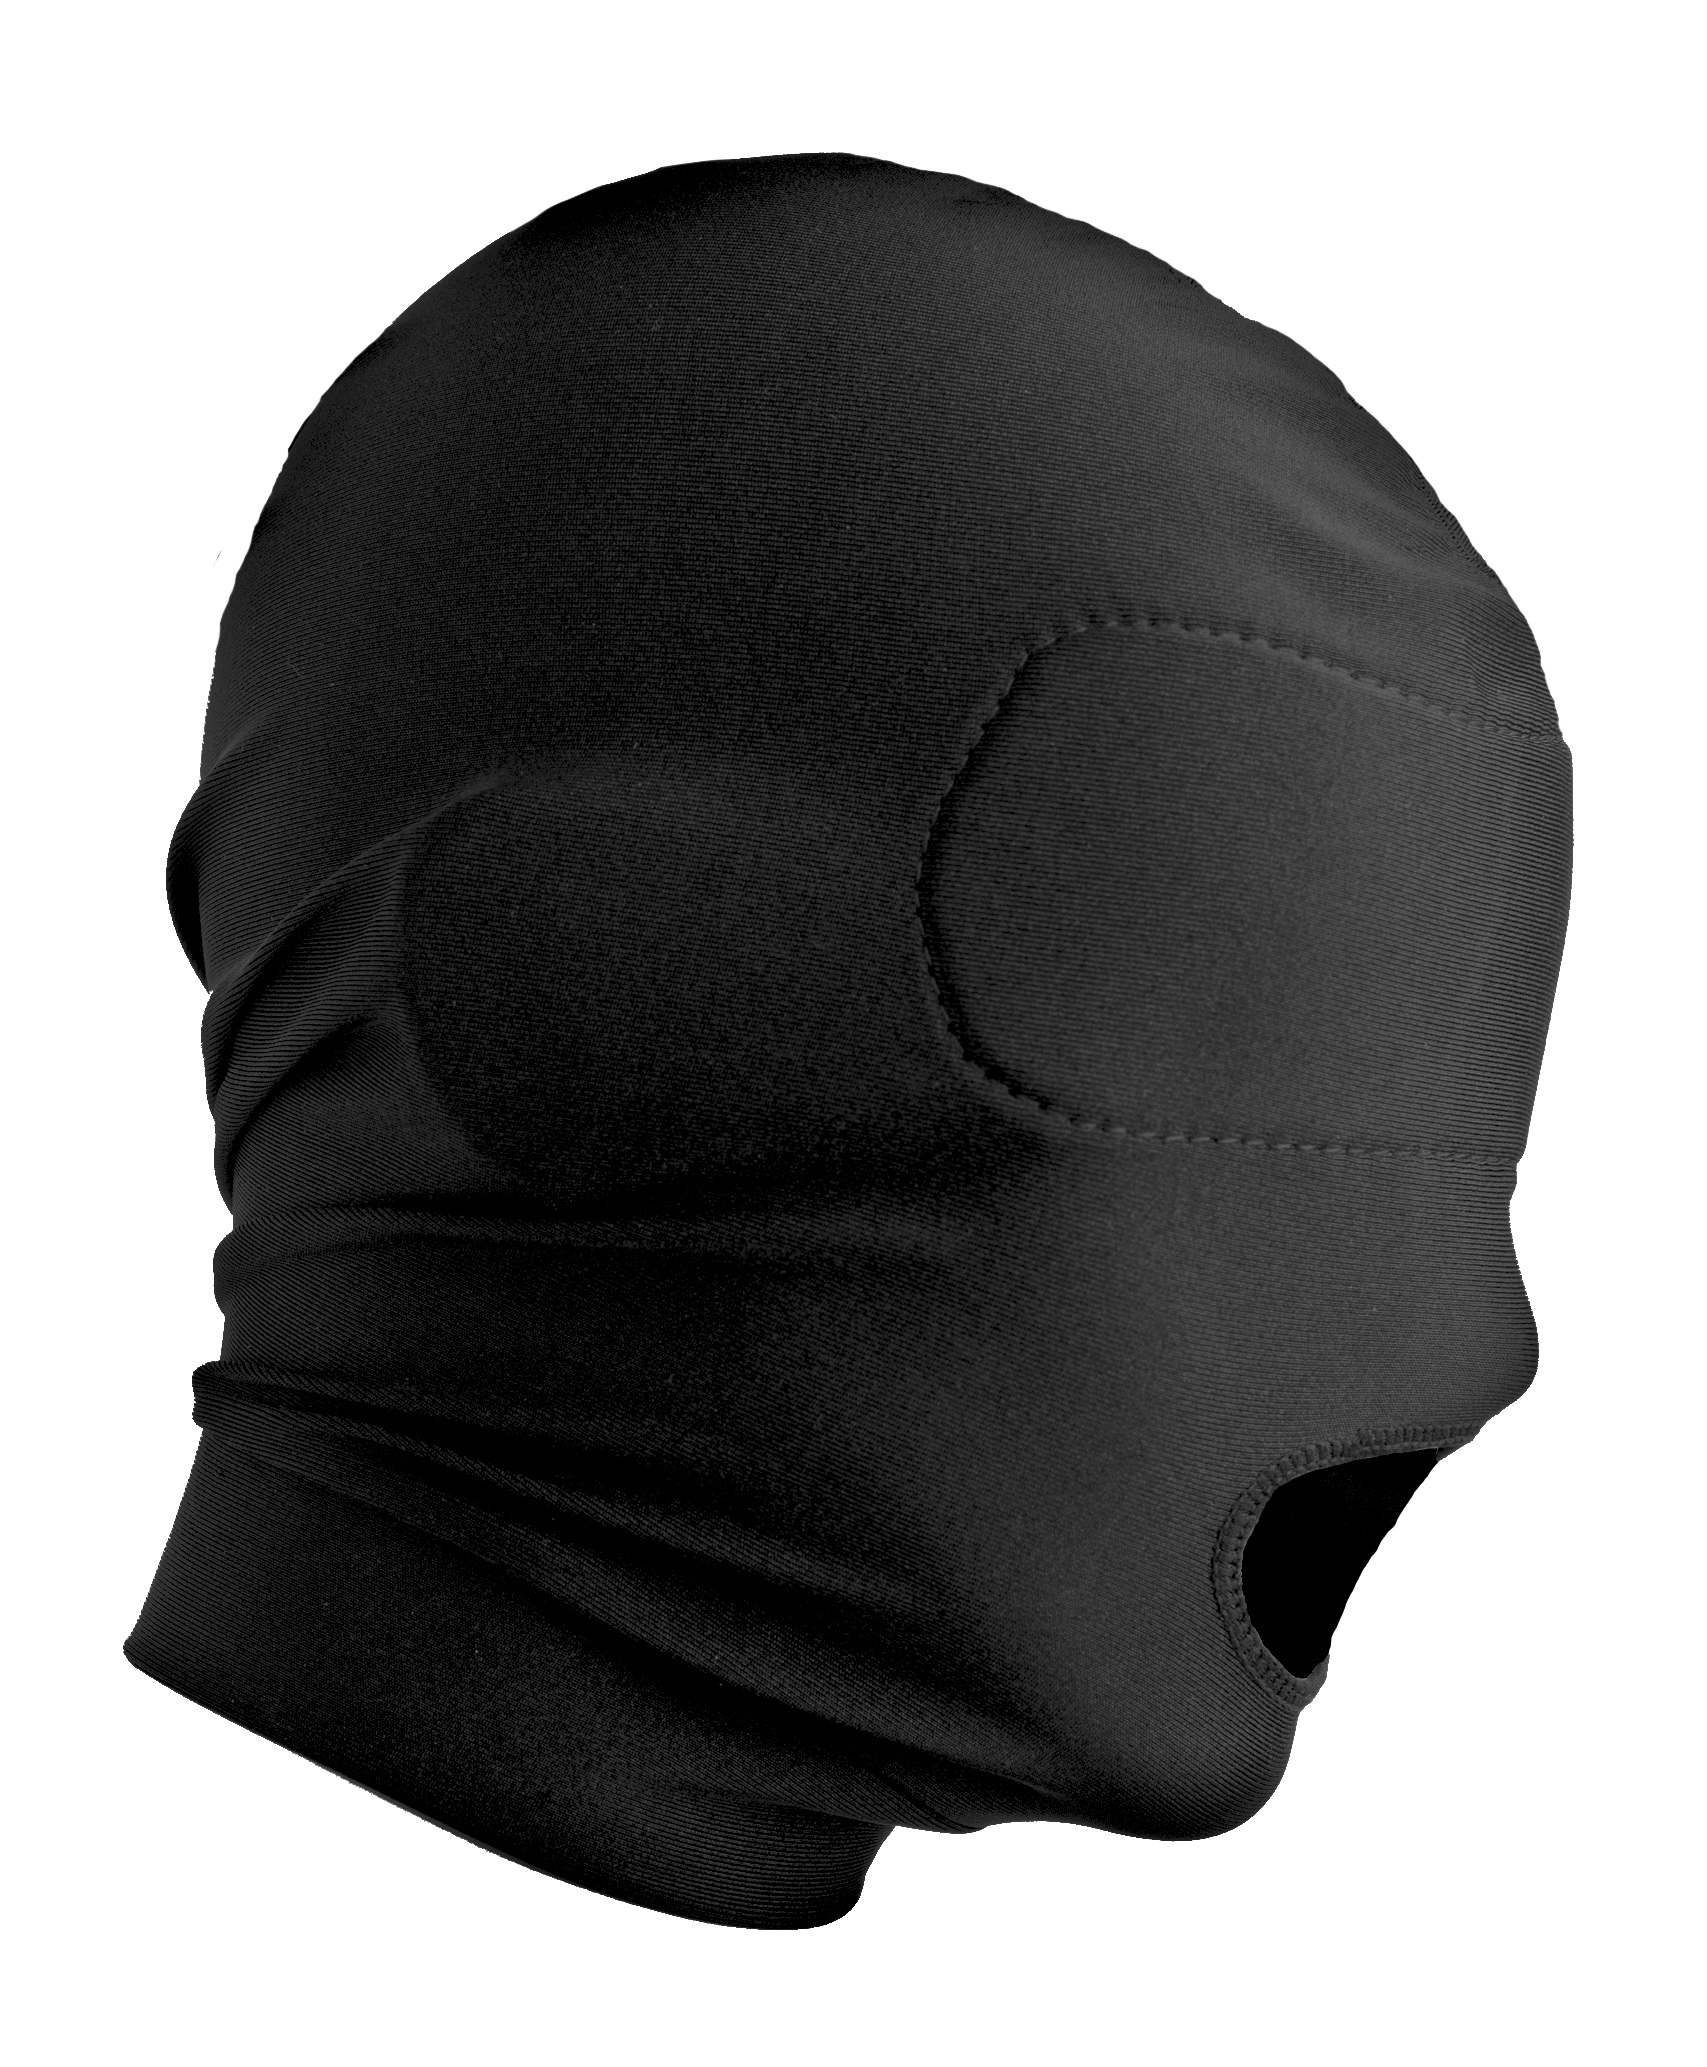 MASTER SERIES DISGUISE OPEN MOUTH HOOD - XRAE167